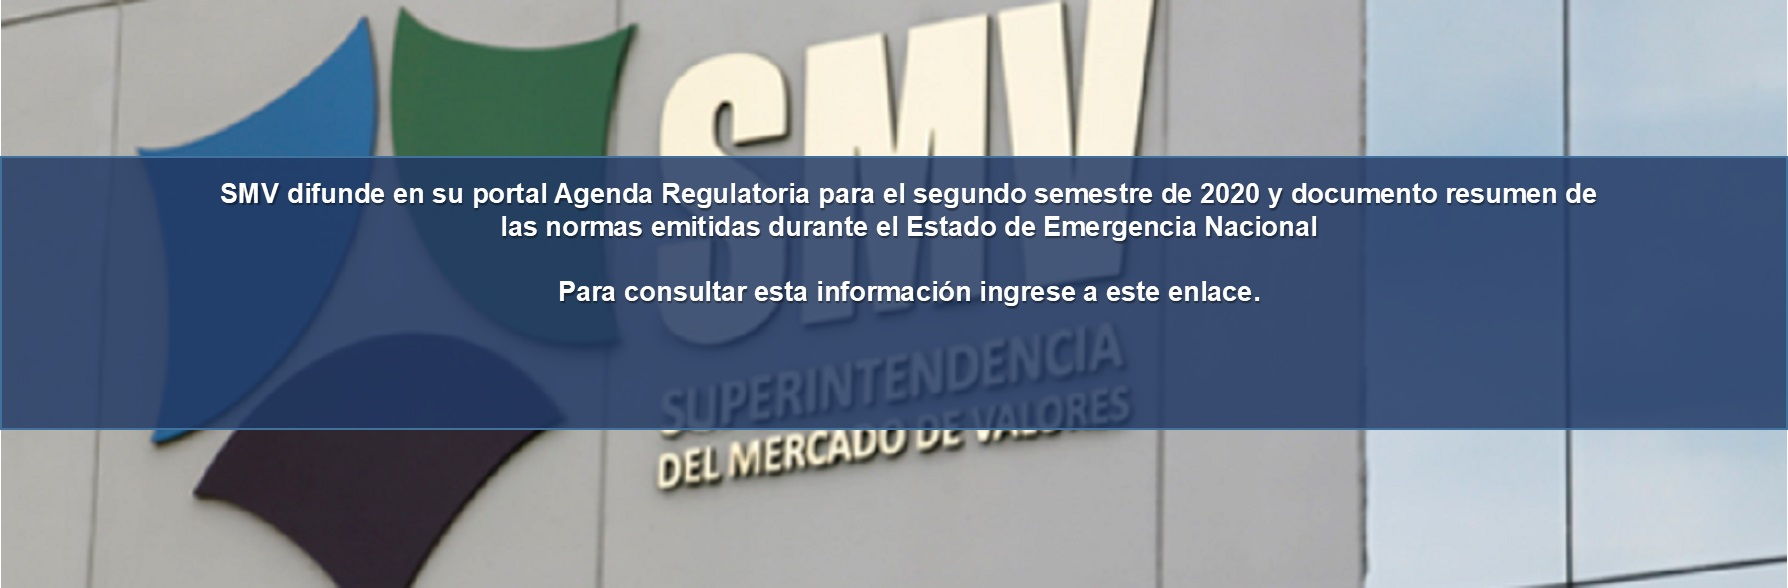 SMV - AGENDA REGULATORIA 2020